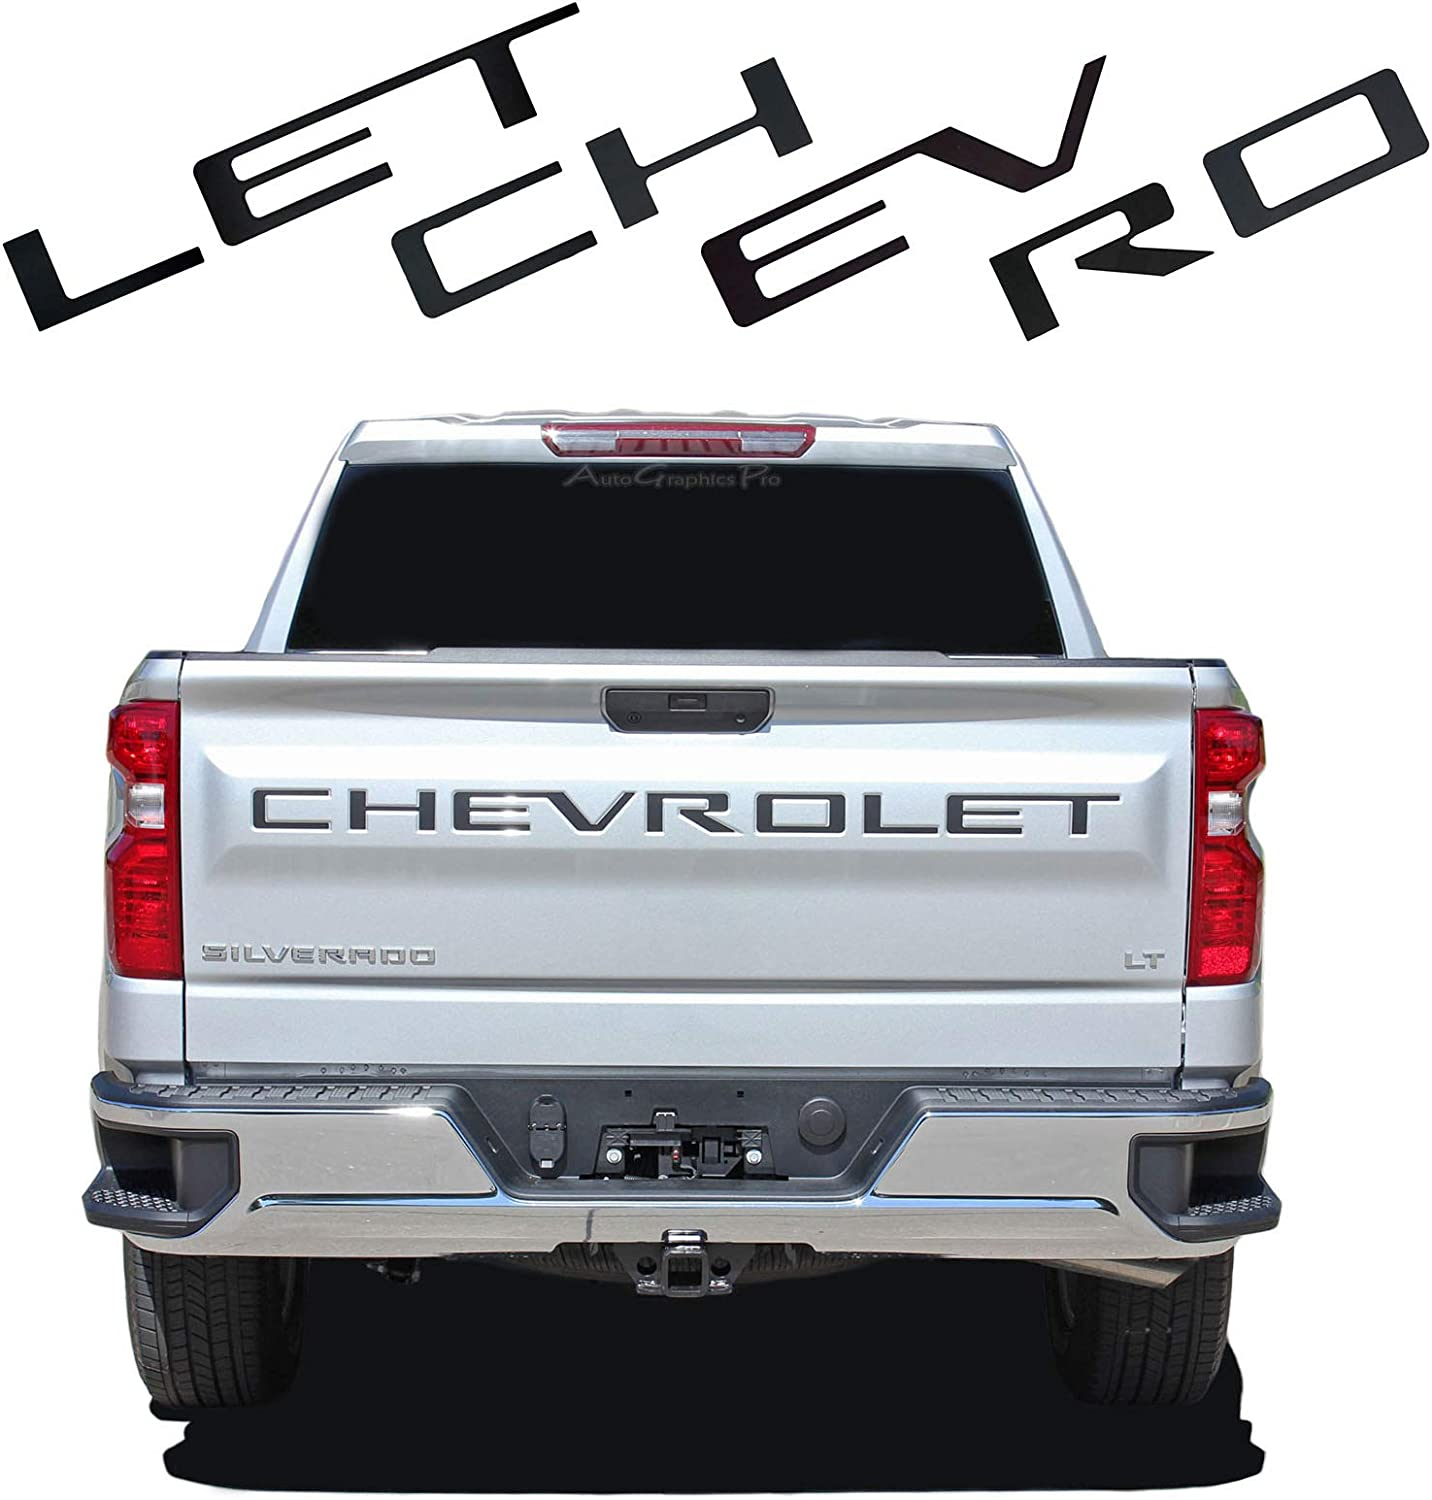 3M Adhesive /& 3D Raised Tailgate Letters AUTO PRO ACCESSORIES Tailgate Insert Letters for 2019 Chevrolet Silverado Grey With Red Outline